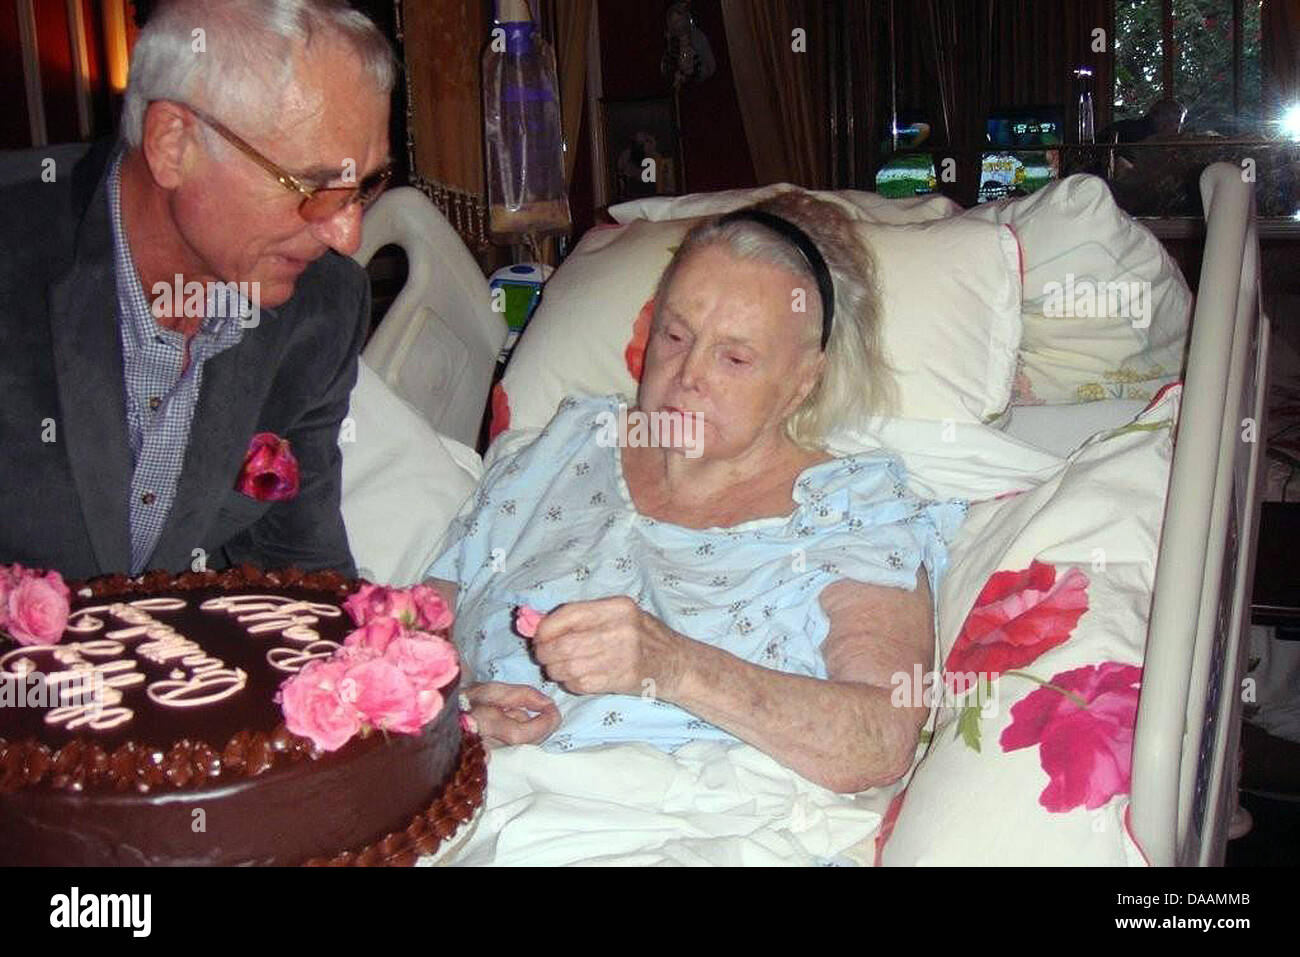 Frederic Prinz Von Anhalt Delivers A Birthday Cake To His 94 Year Old Wife Zsa Gabor At Their Home In Los Angeles Germany 06 February 2011